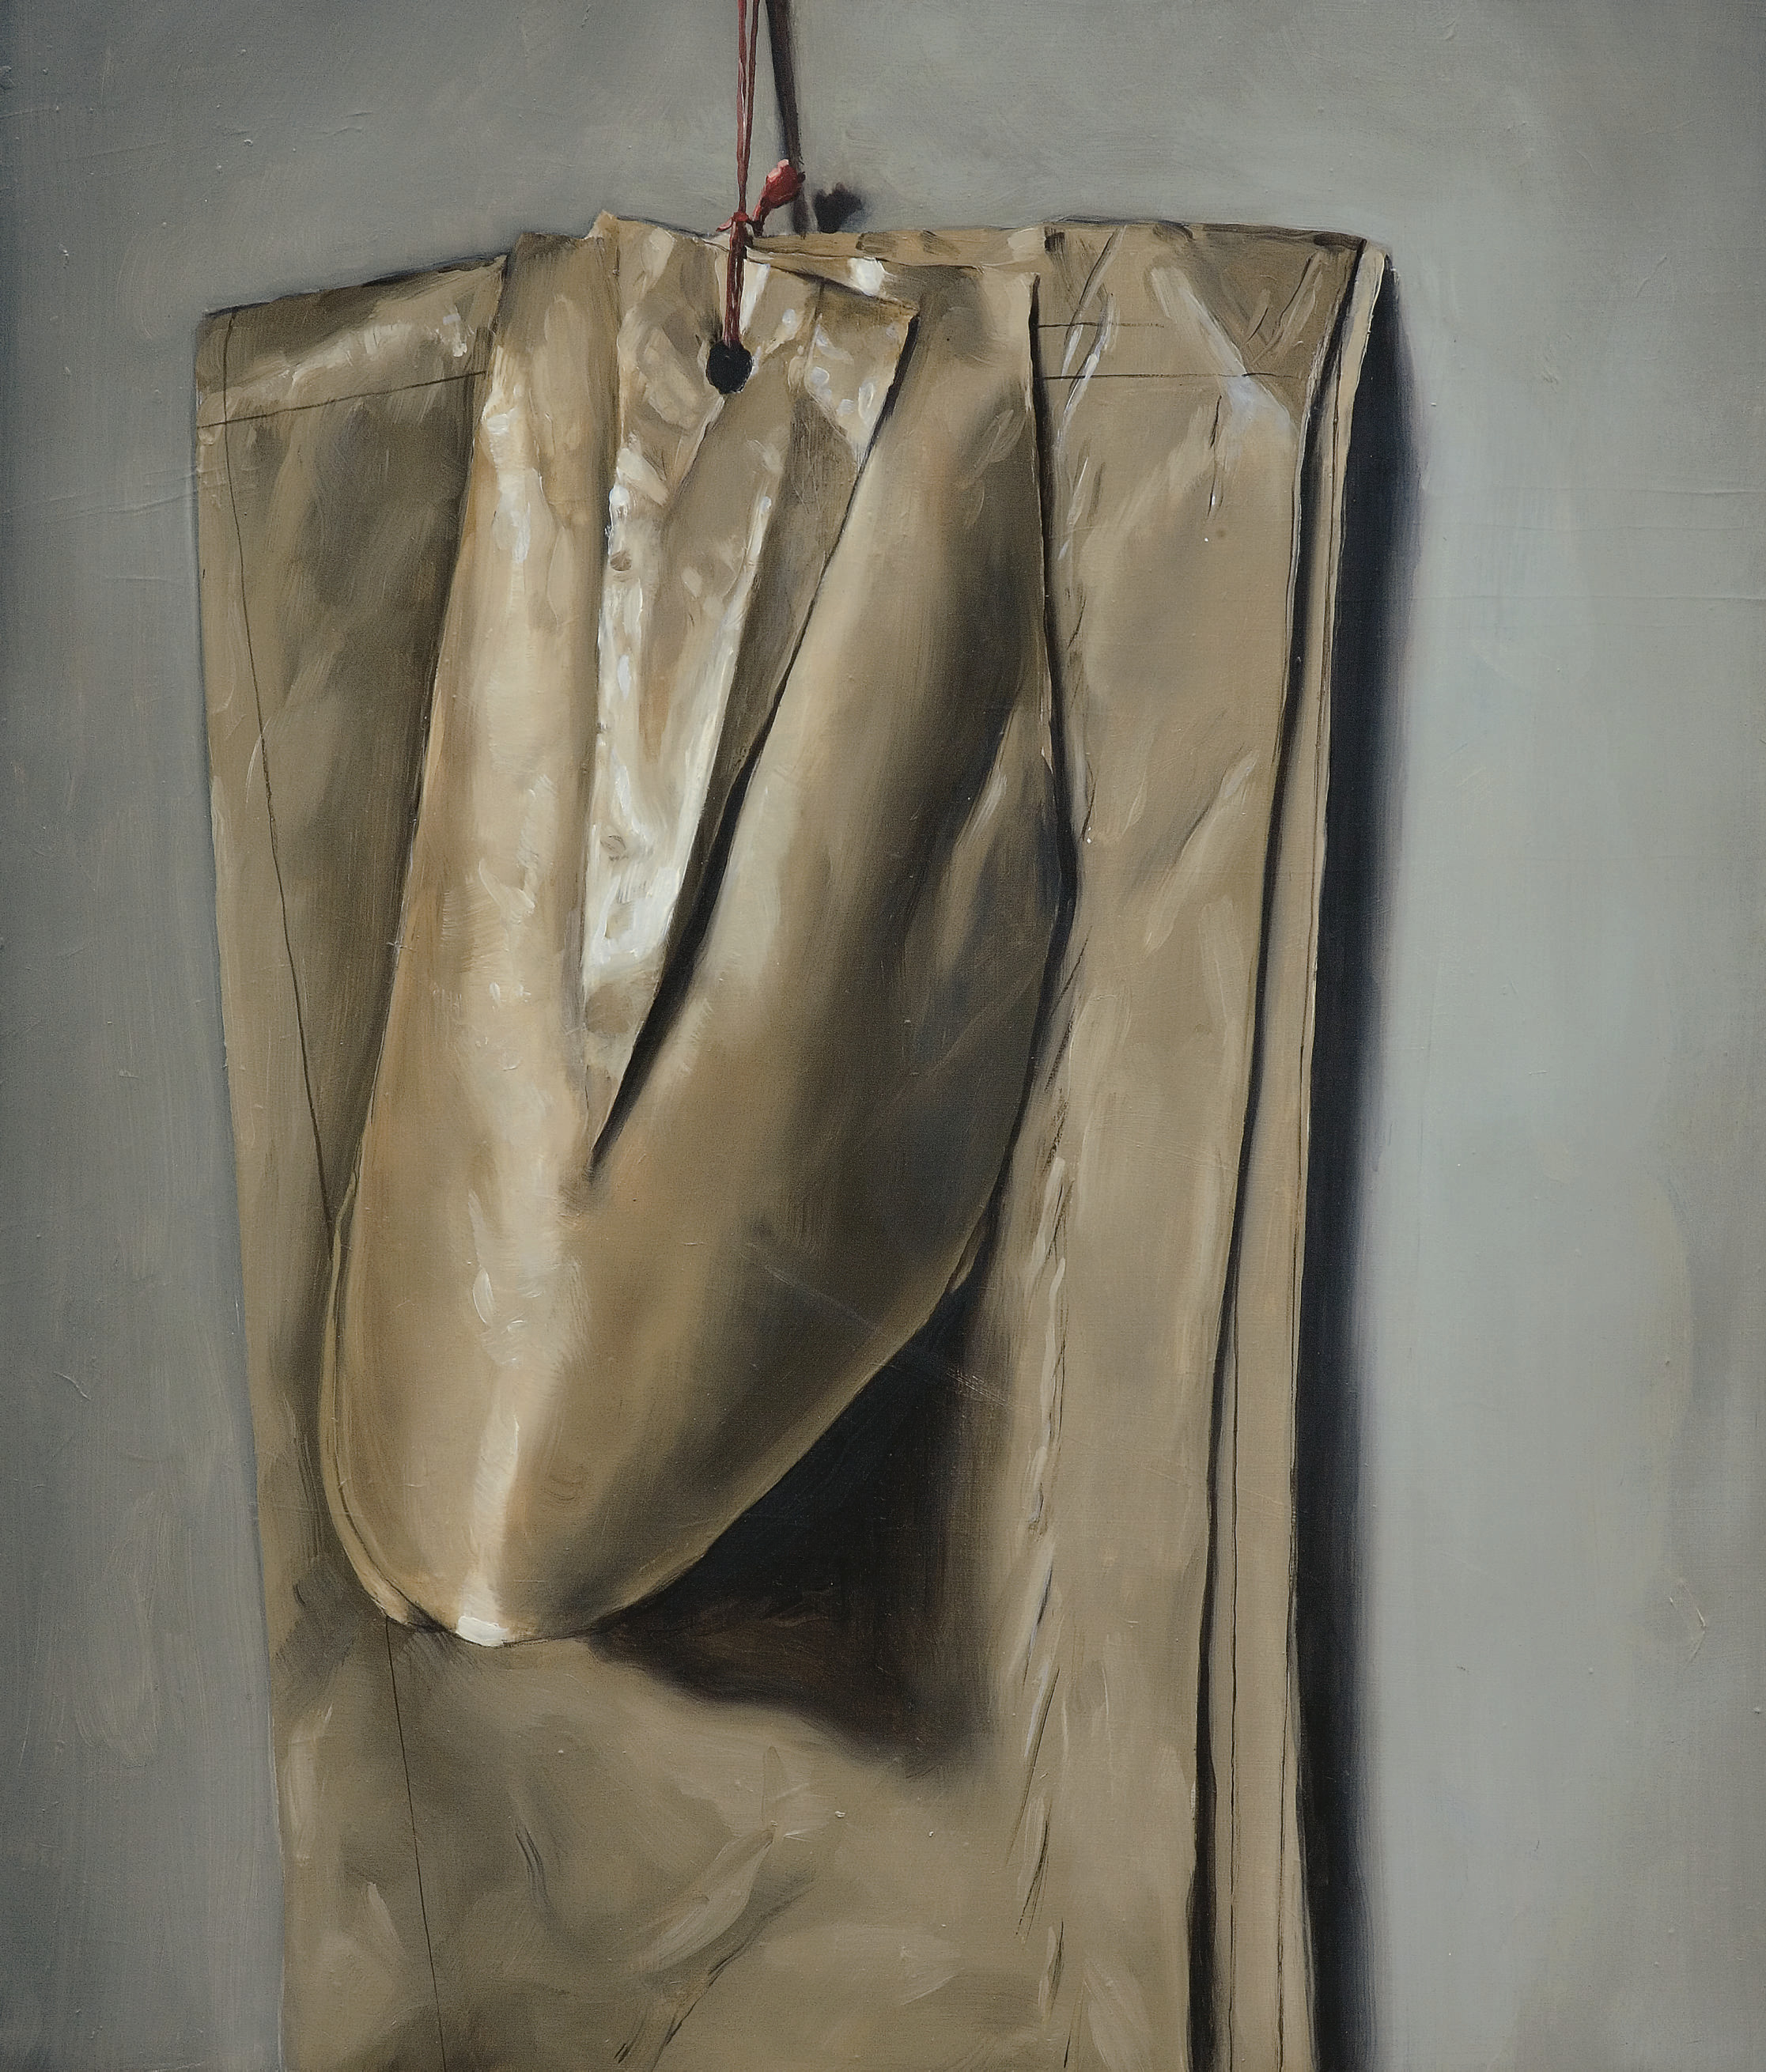 Michaël Borremans (b. 1963)